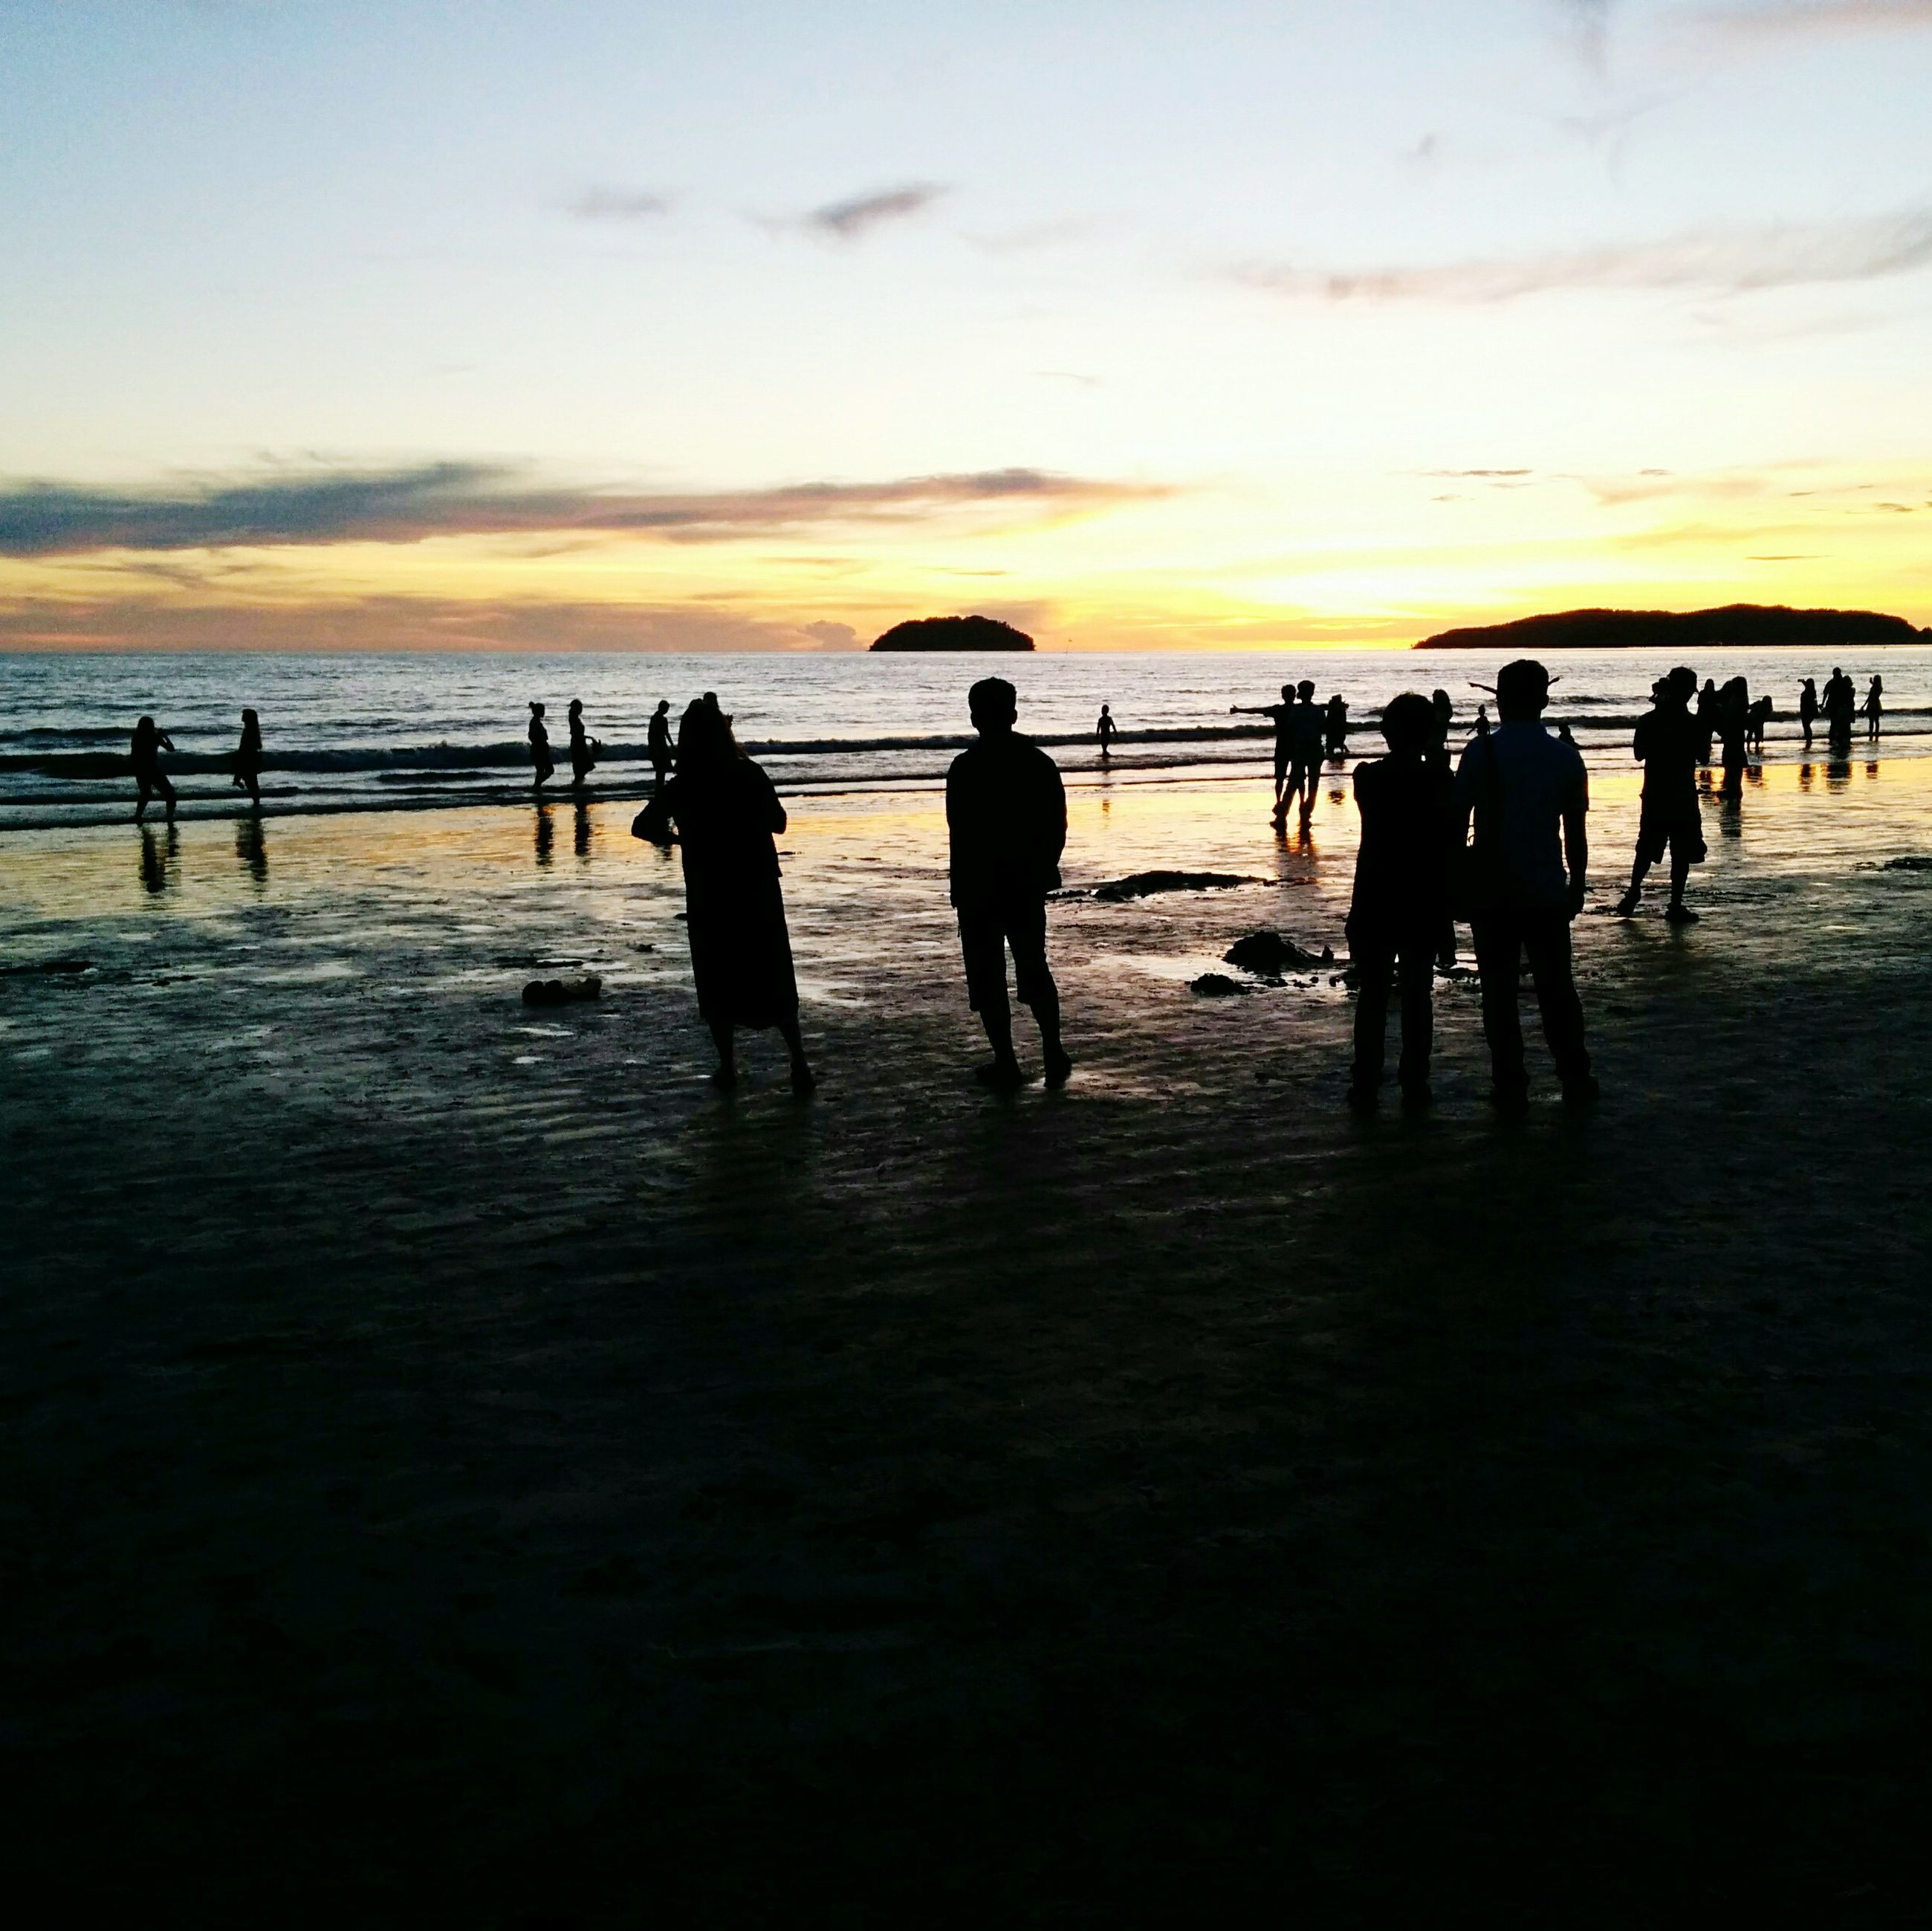 beach, sunset, silhouette, water, nature, sea, large group of people, leisure activity, sky, lifestyles, beauty in nature, scenics, real people, sand, outdoors, horizon over water, women, vacations, men, beach volleyball, day, people, adult